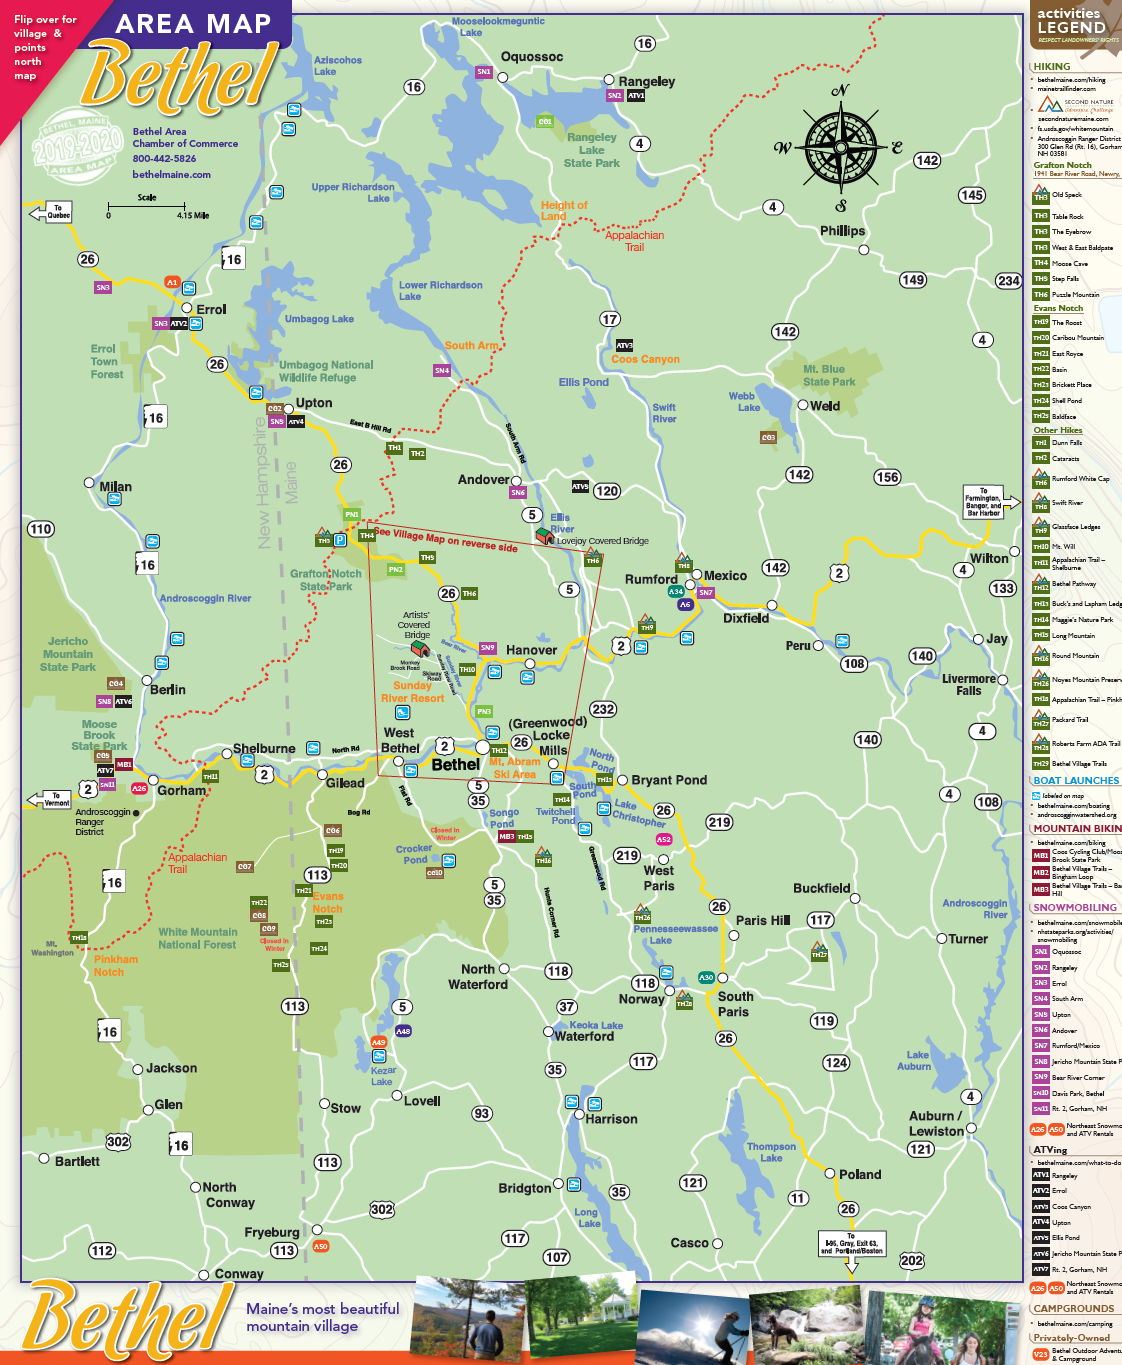 Area Map 2021